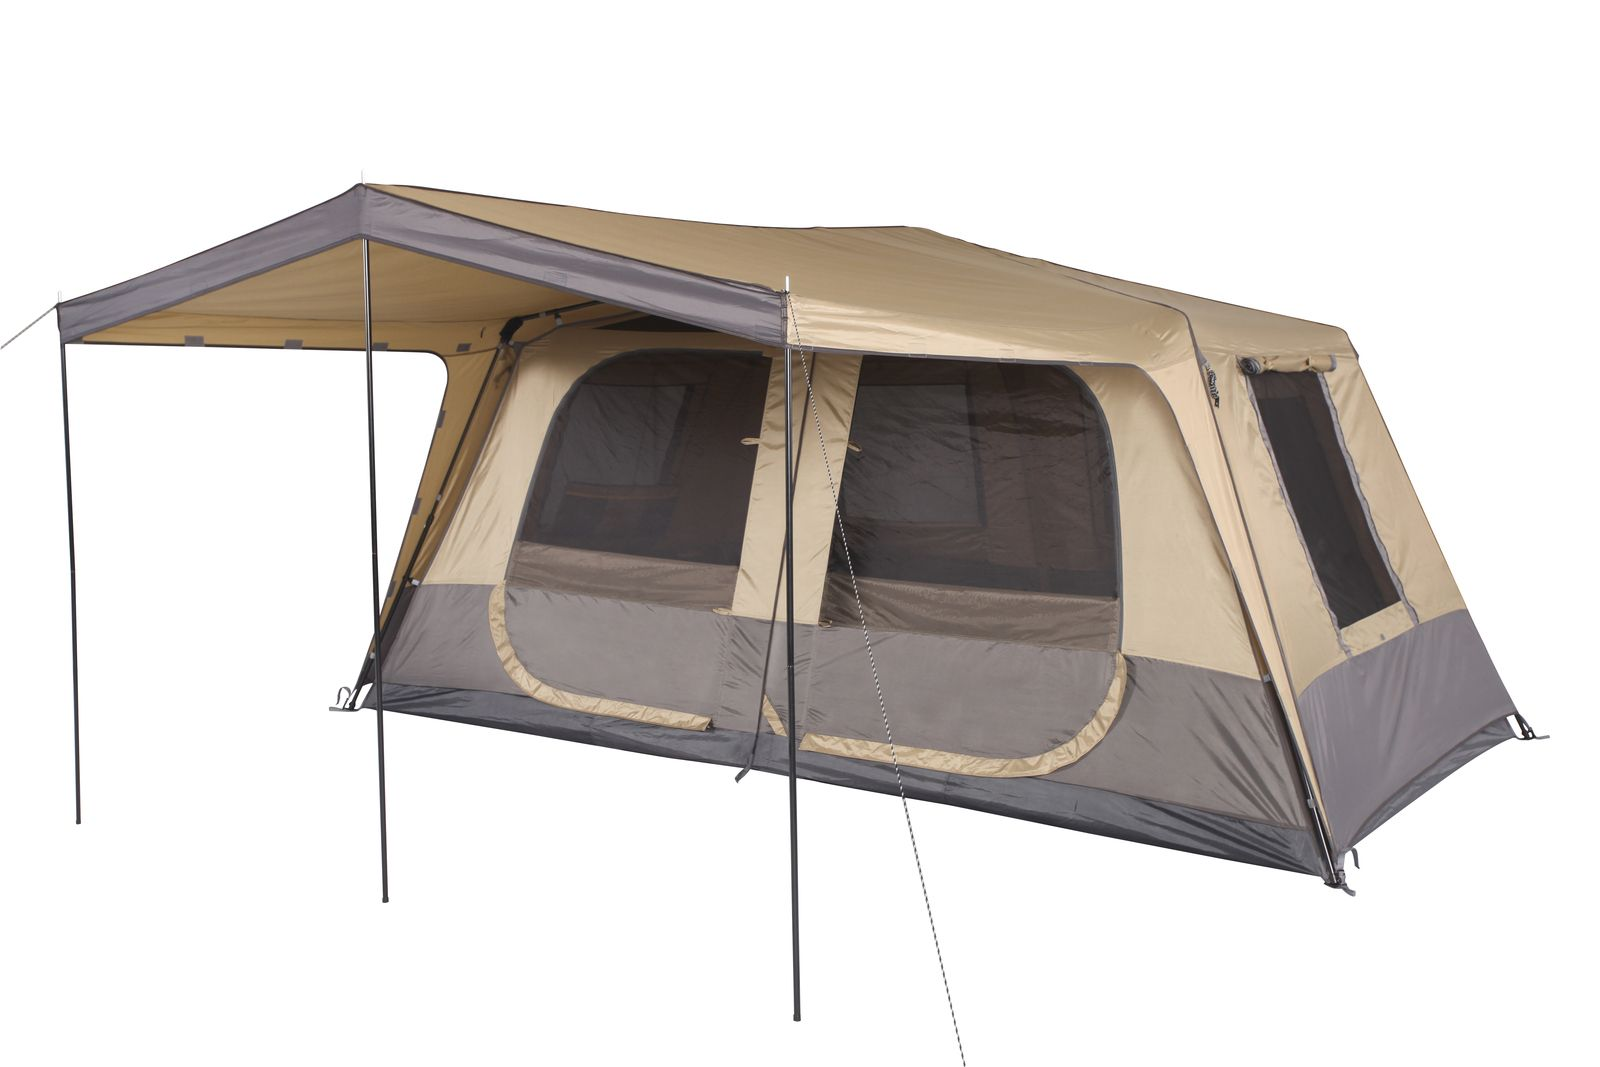 OZtrail 12x15 Canvas Cabin Tent | Cabin Tents | Pinterest | Cabin tent Tents and Cabin  sc 1 st  Pinterest & OZtrail 12x15 Canvas Cabin Tent | Cabin Tents | Pinterest | Cabin ...